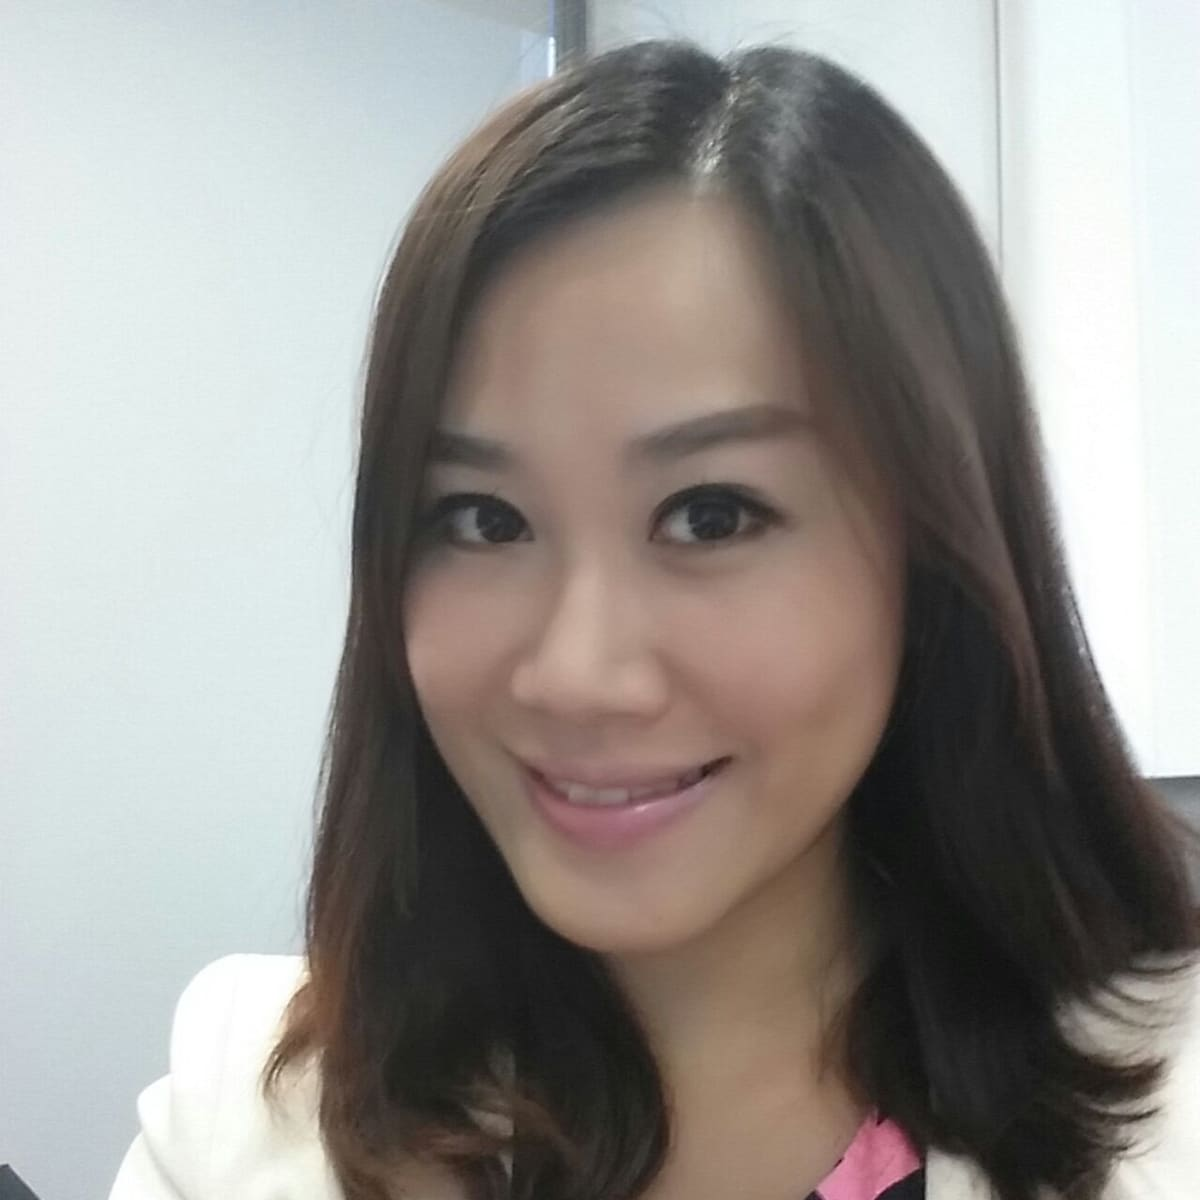 Connie From Hong Kong